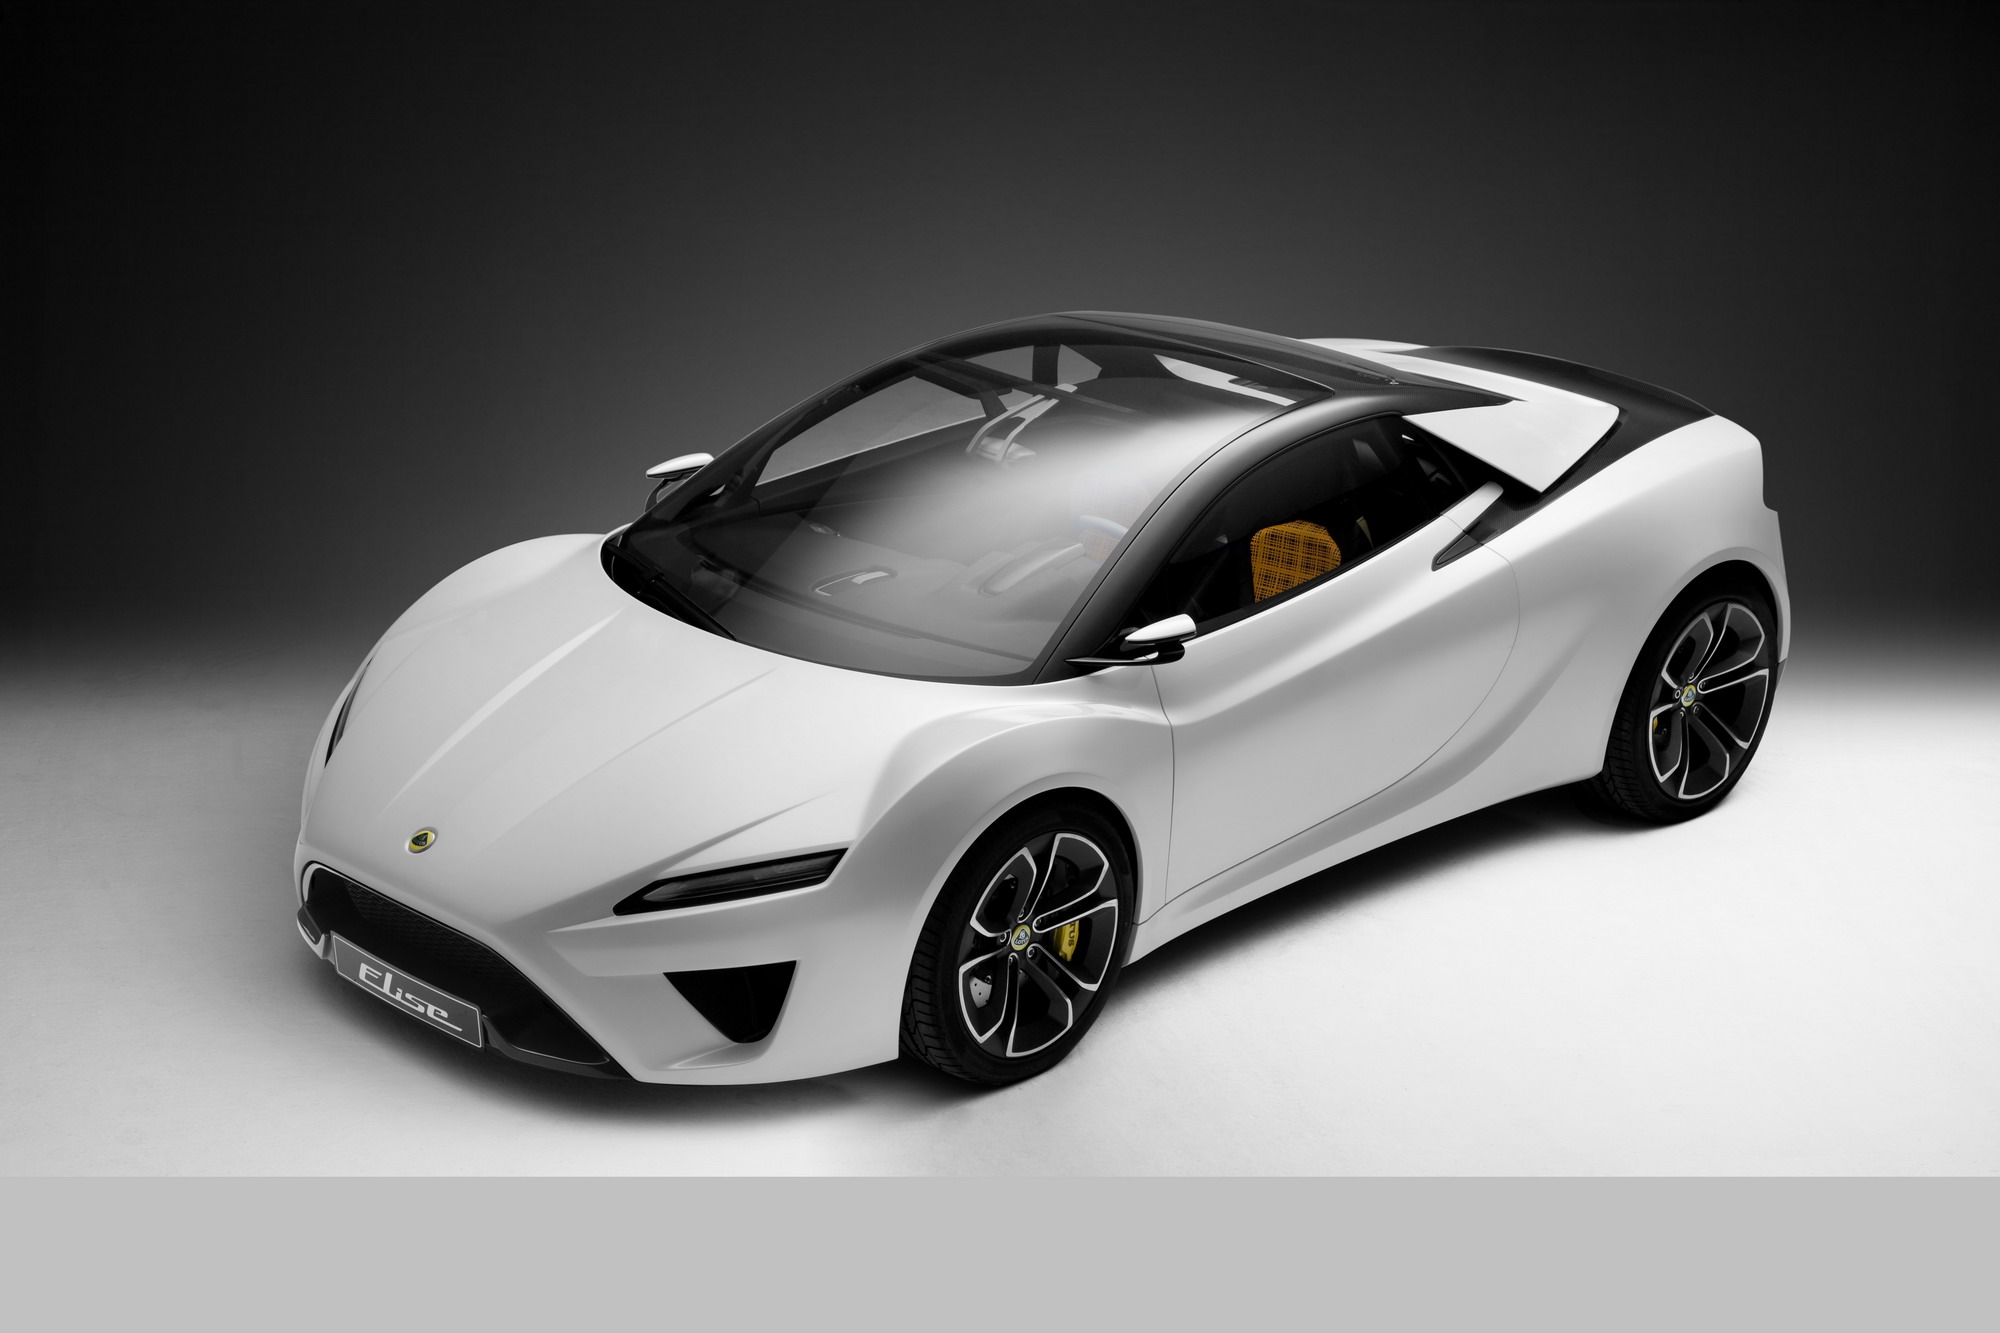 2010 Lotus Elise Concept Top Speed